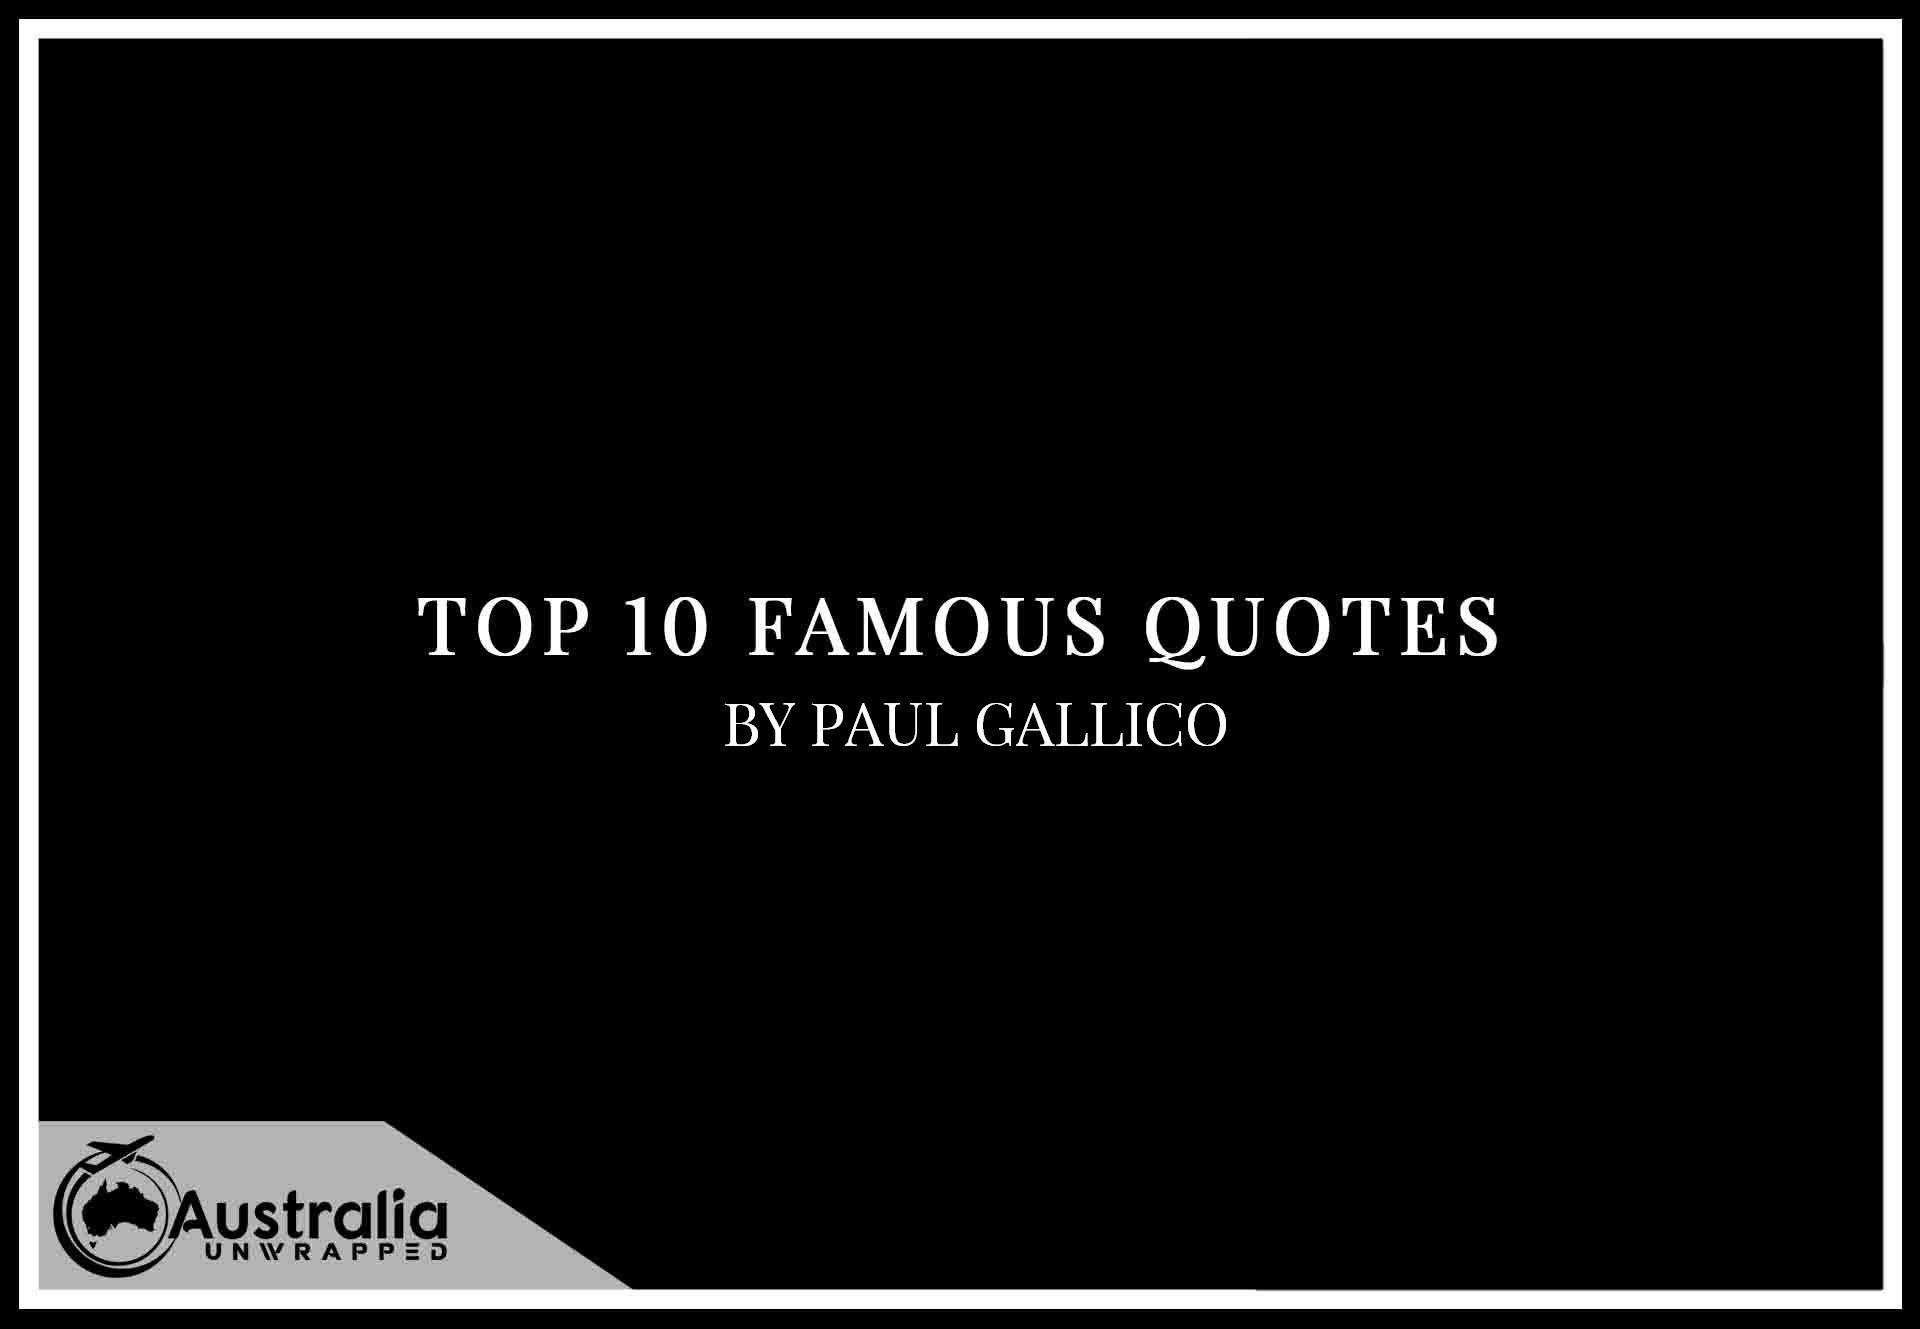 Top 10 Famous Quotes by Author Paul Gallico